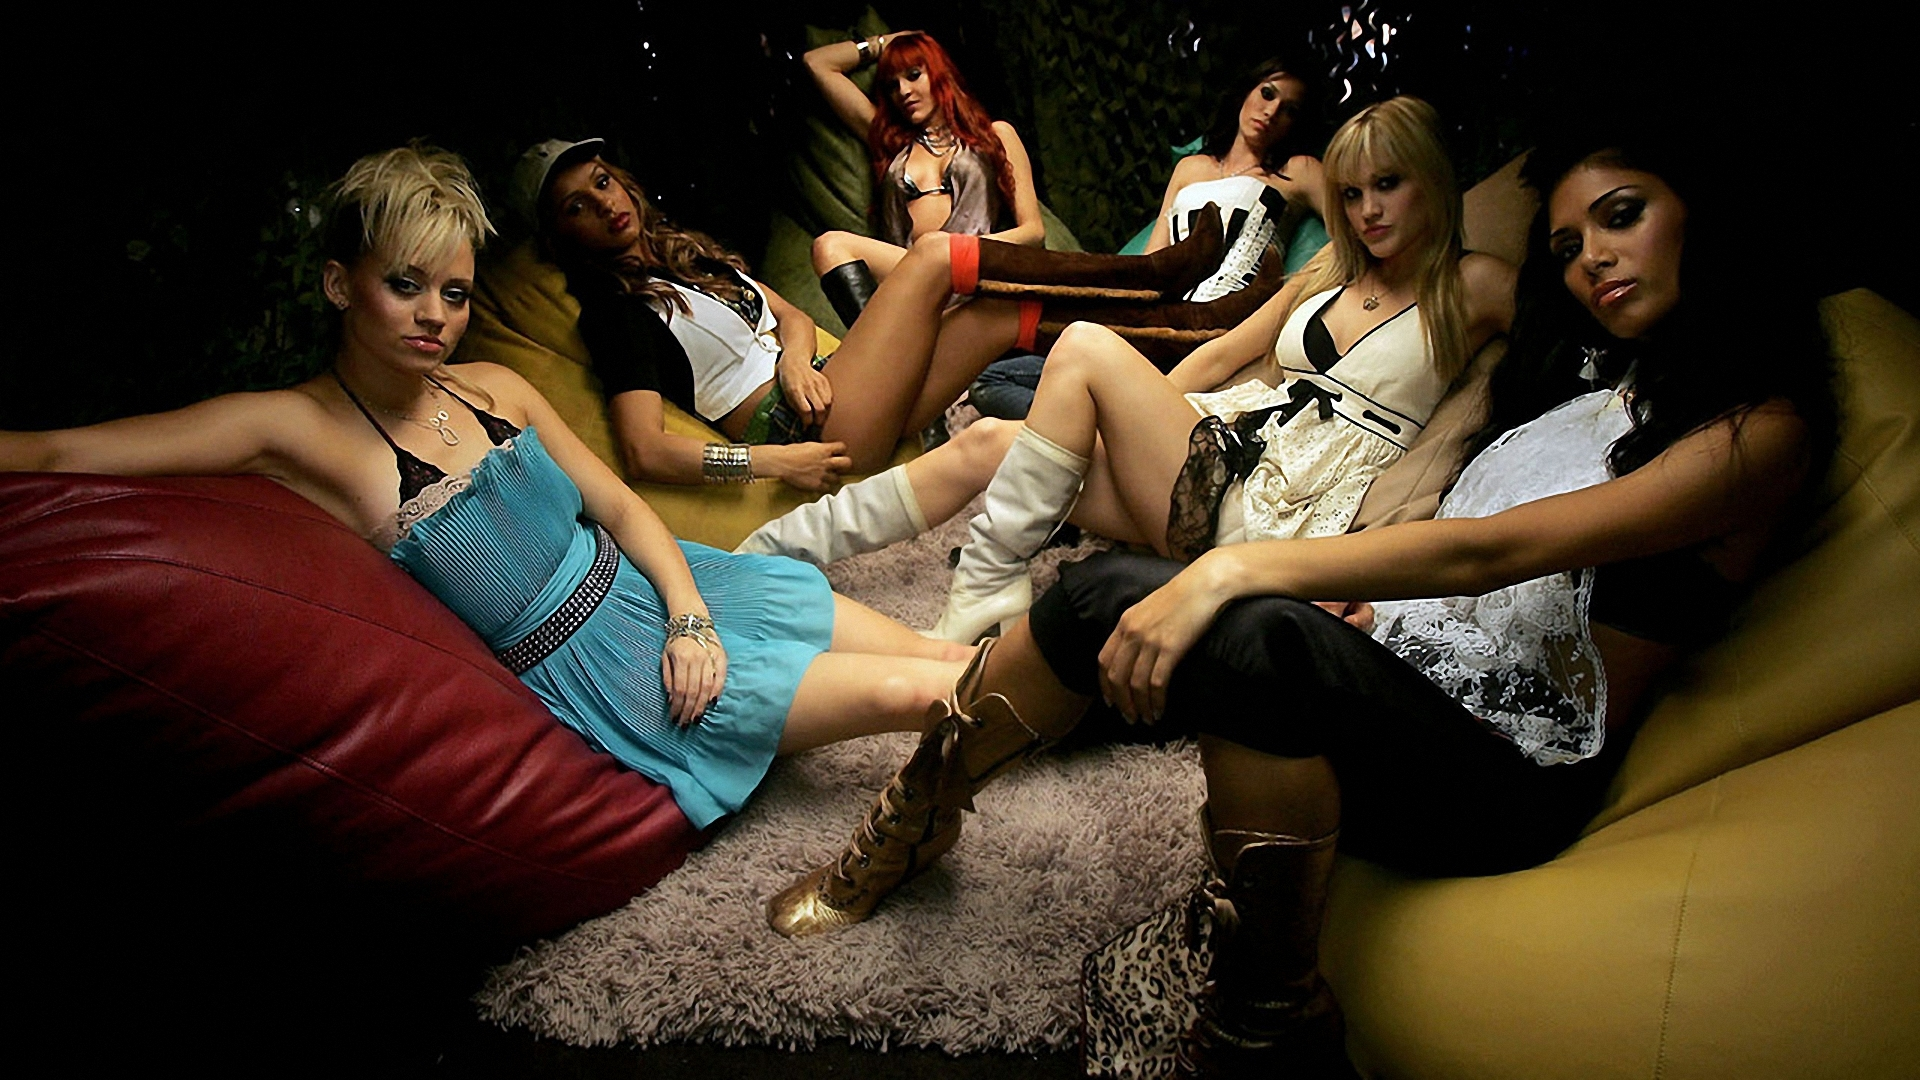 Pussycat Dolls Wallpapers Pictures Images 1920x1080